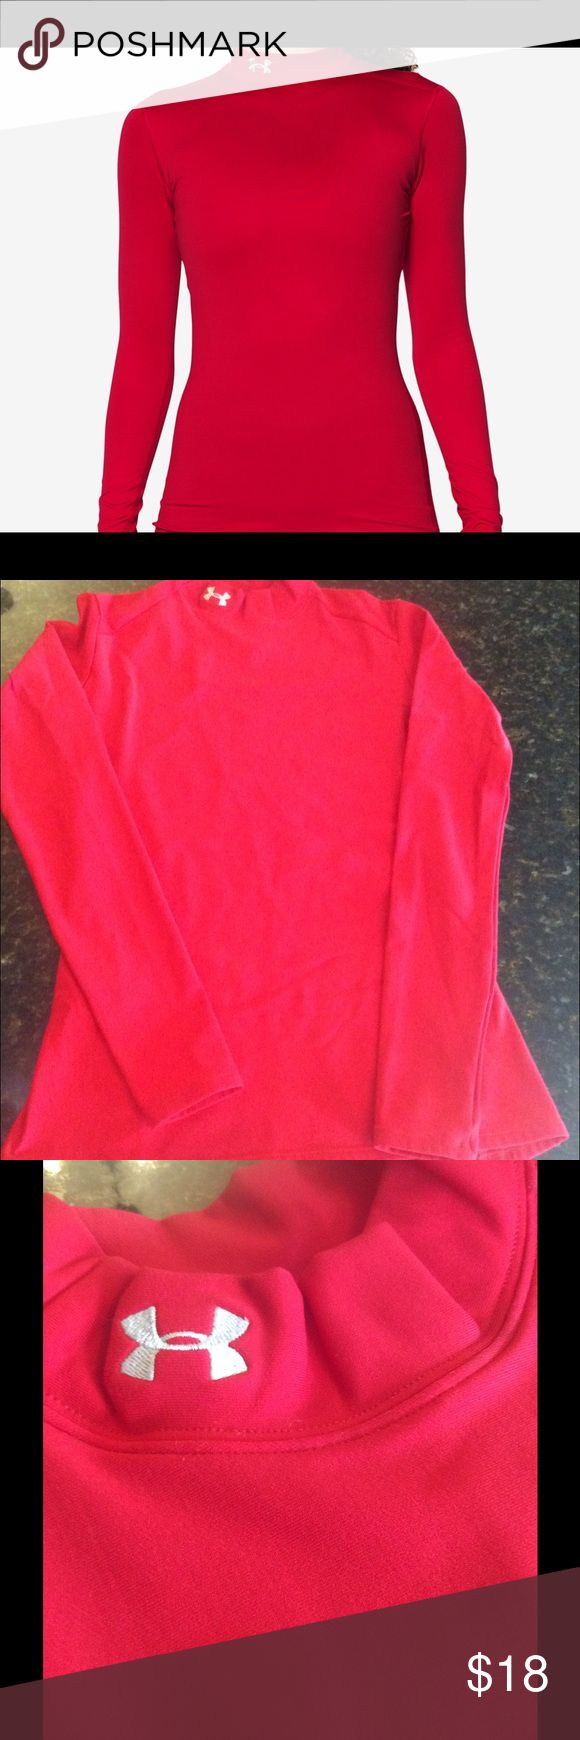 Under armor mock turtle neck cold gear Vibrant red under gear for a xtreme cold protection Under Armour Tops